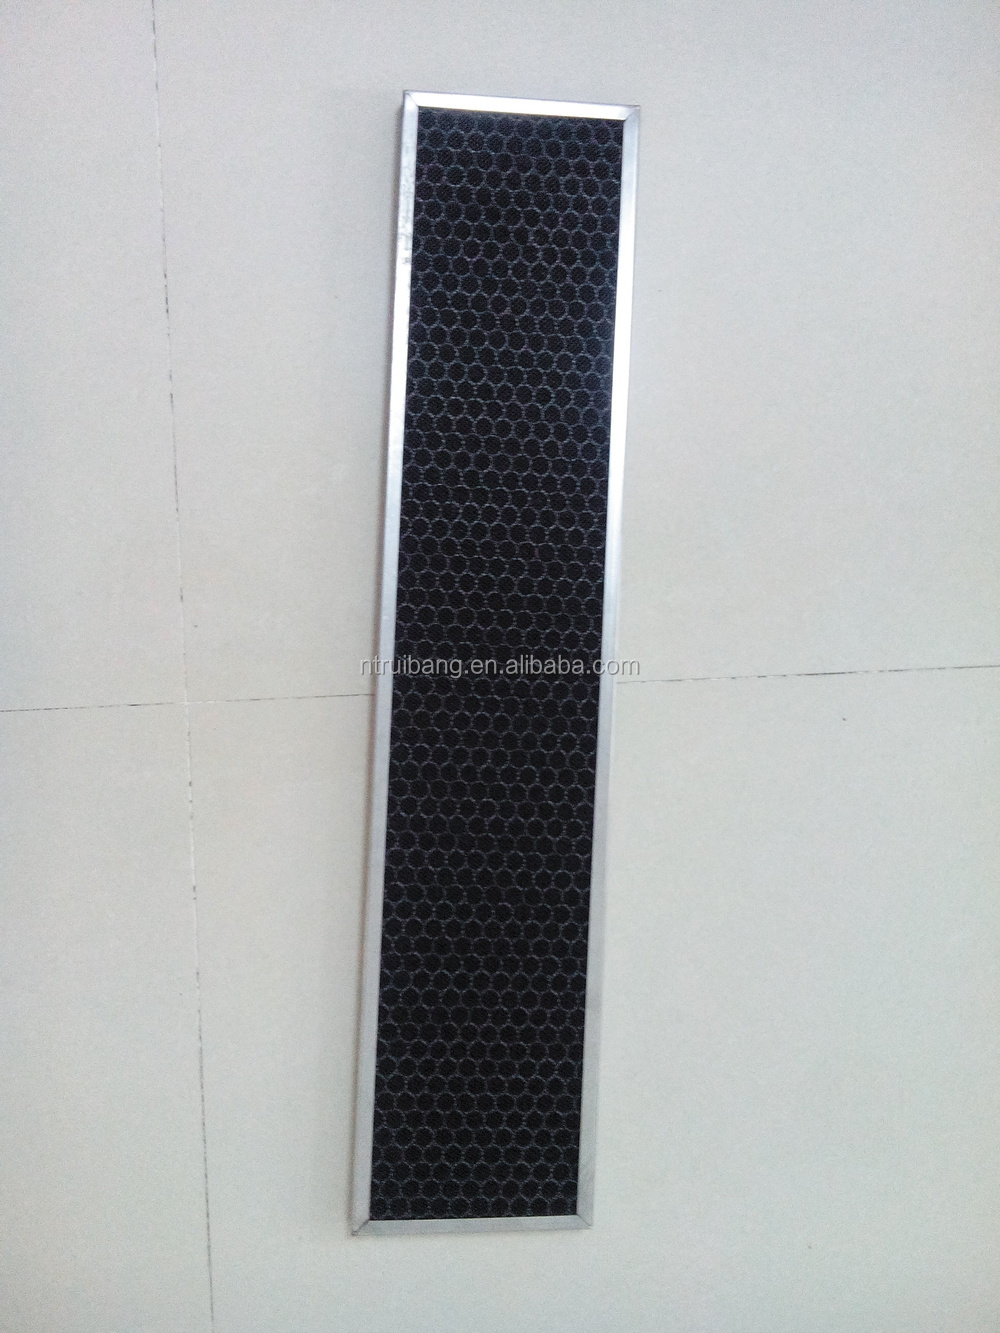 Manufacturing Air Conditioner Parts Of Activated Carbon Filter ...